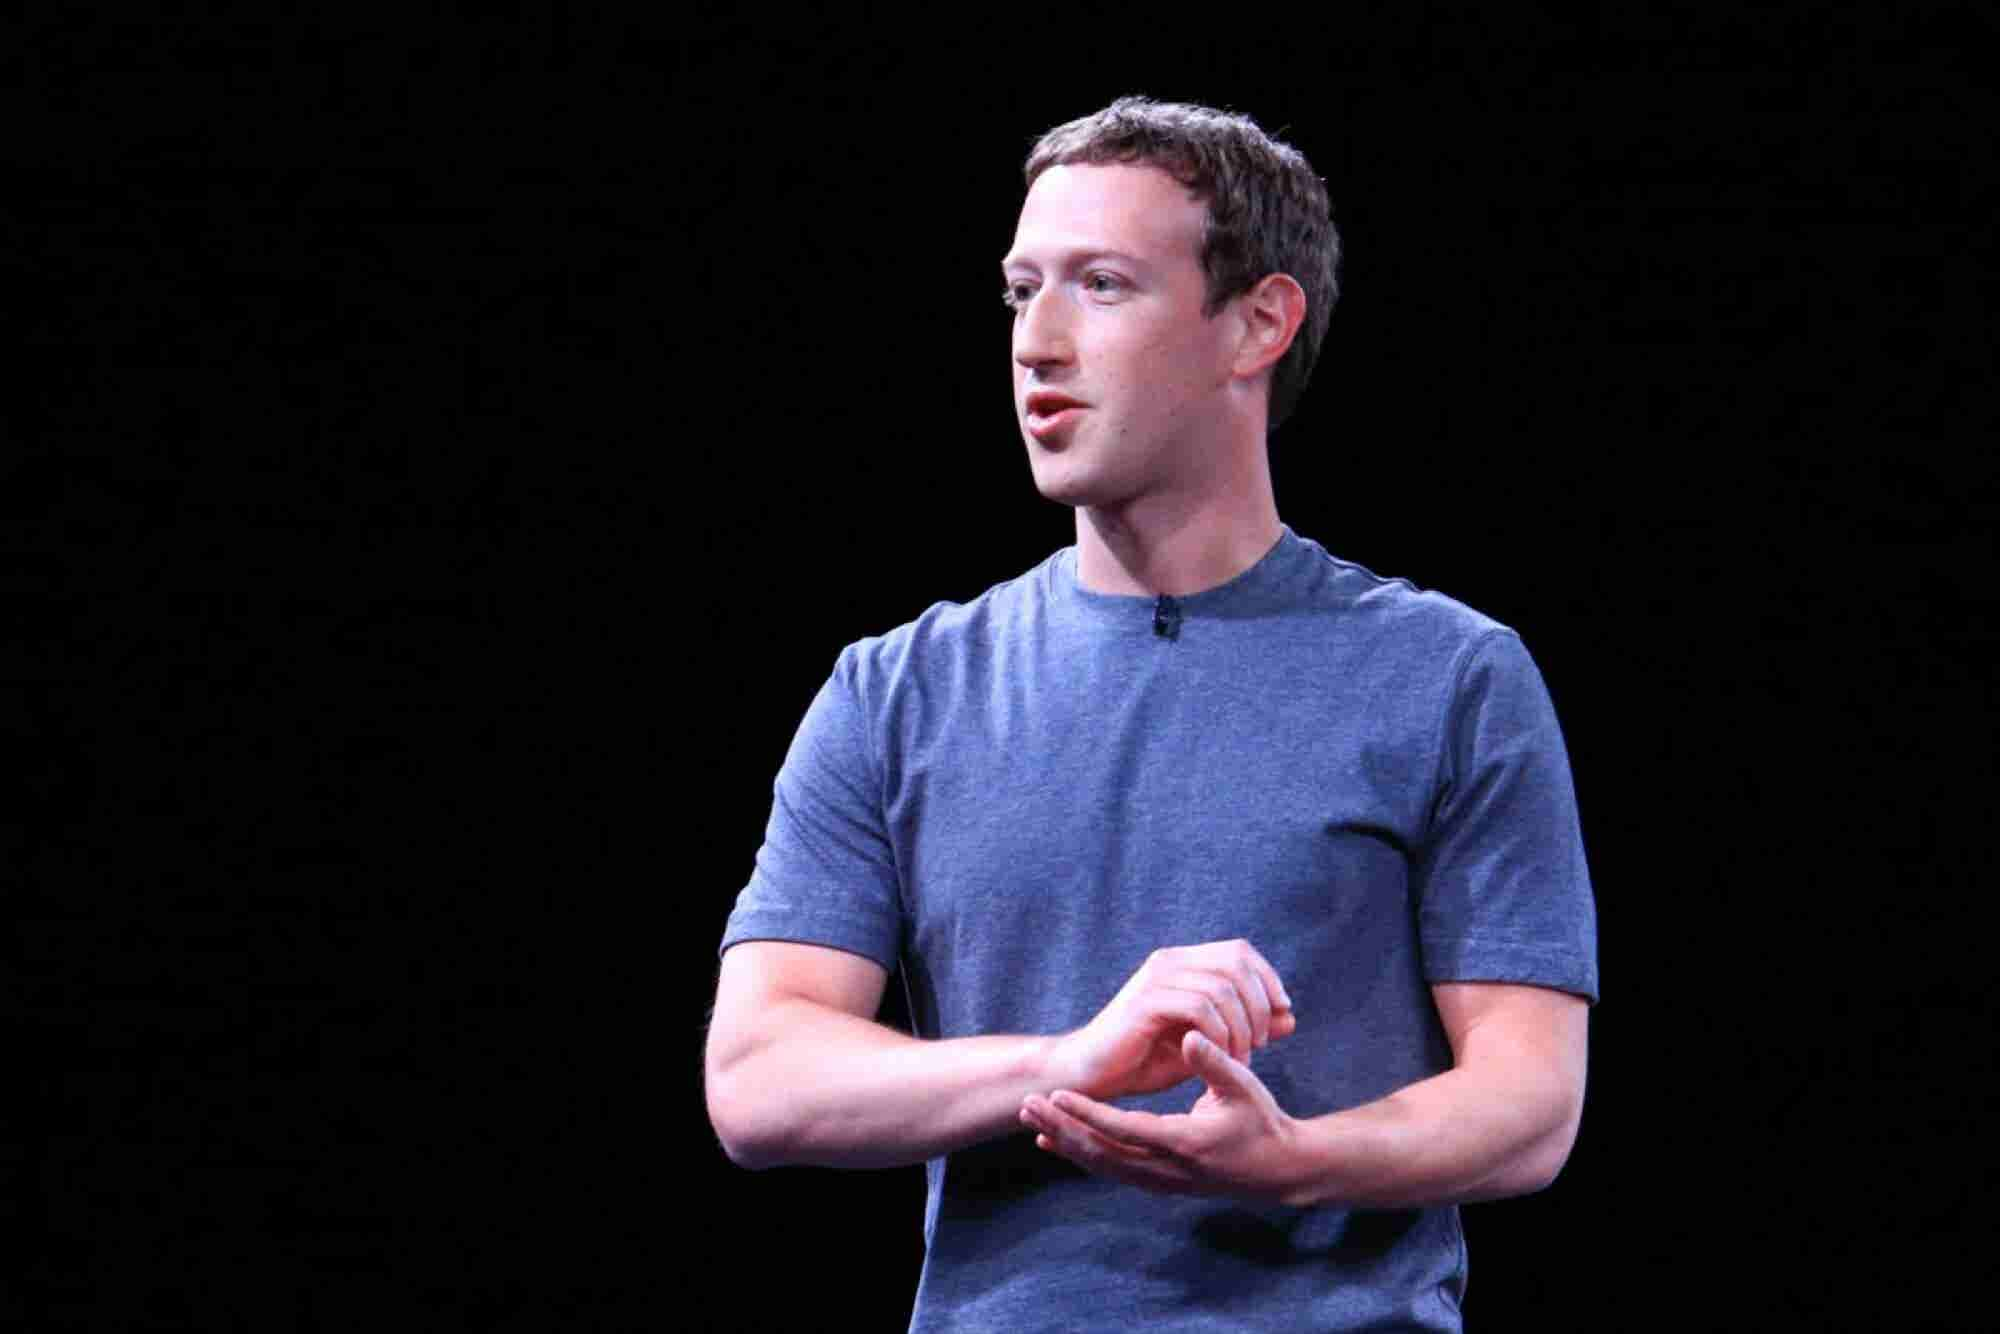 How Do Your Exercise Habits Compare to Elon Musk's, Mark Zuckerberg's and Sheryl Sandberg's?